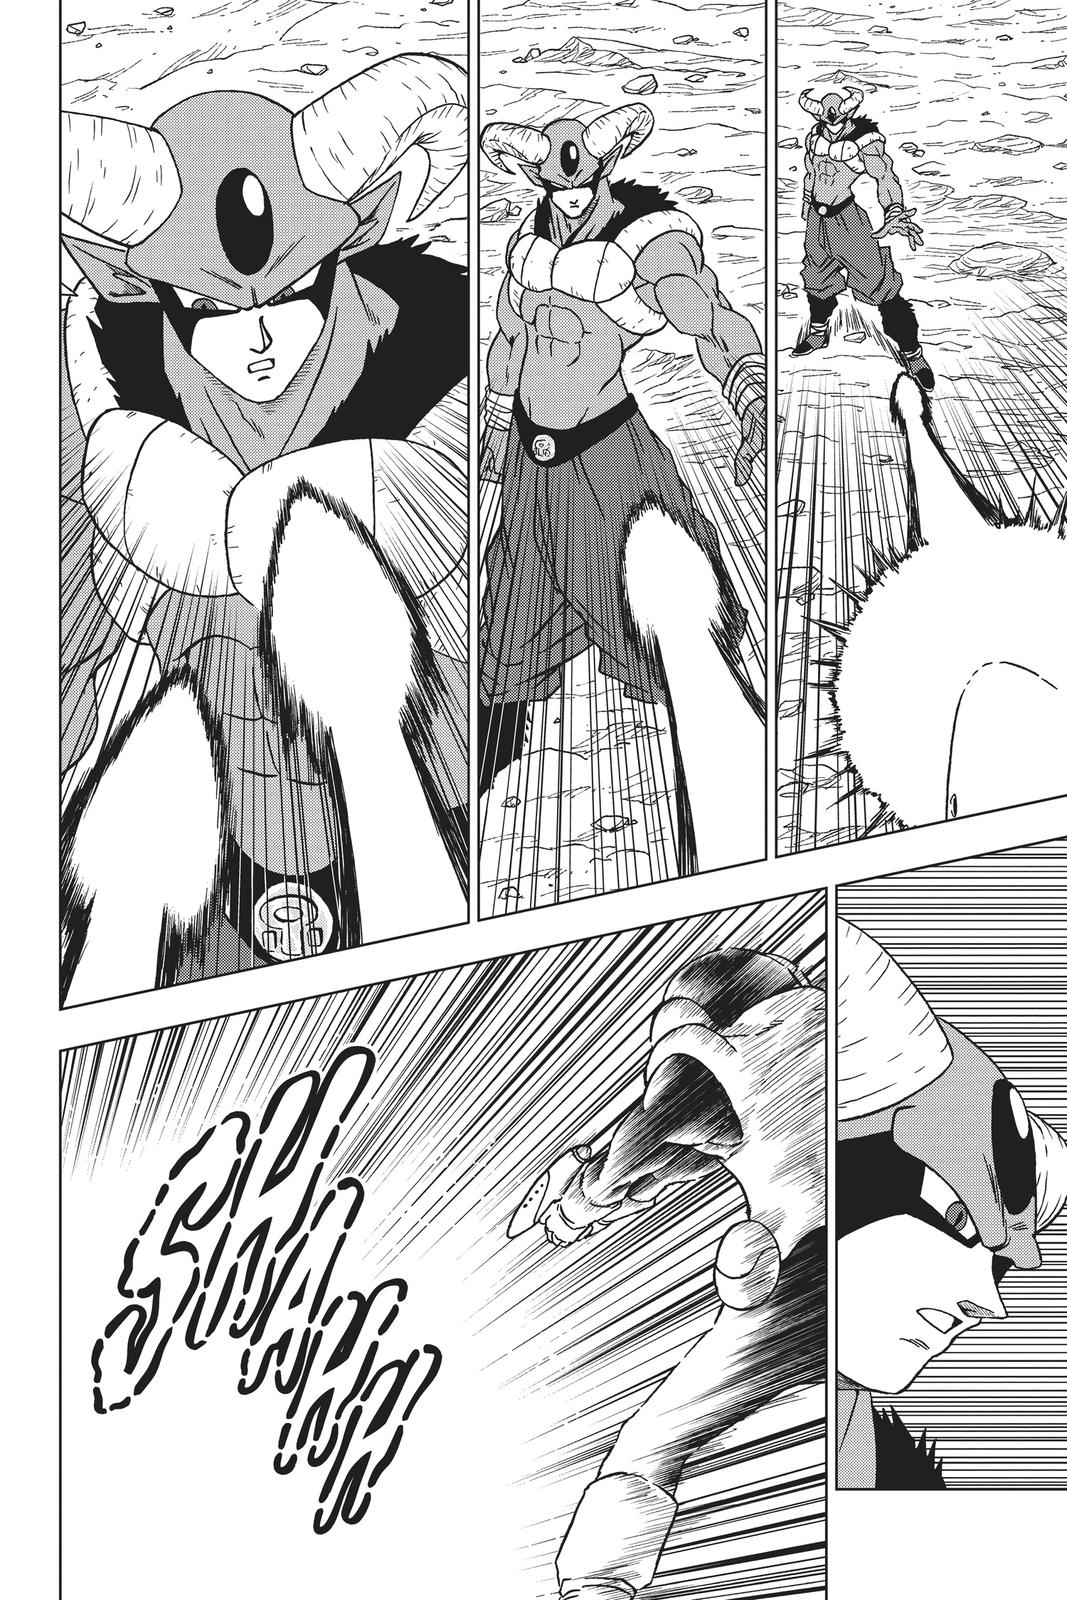 Dragon Ball Super Chapter 62 Page 43